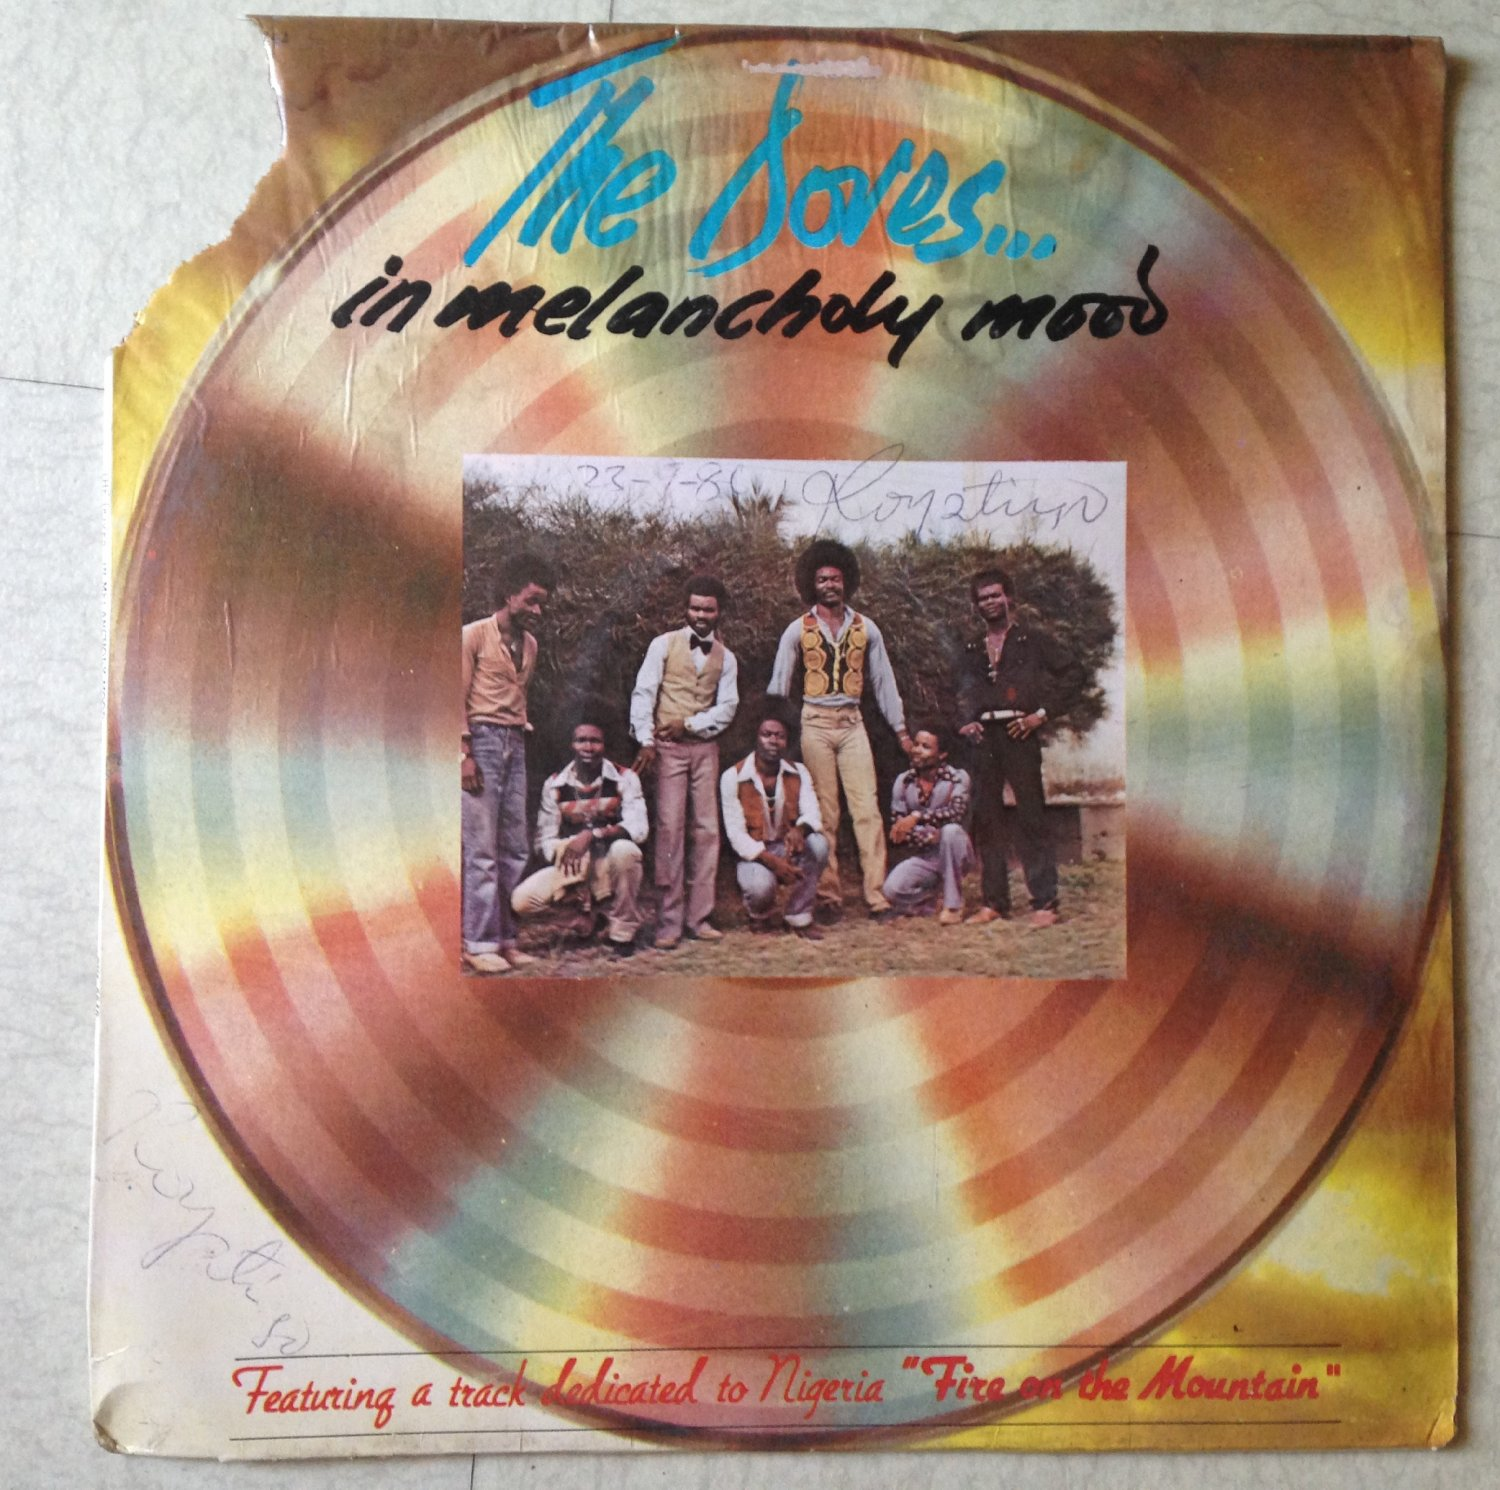 THE DOVES LP in melancholy mood NIGERIA